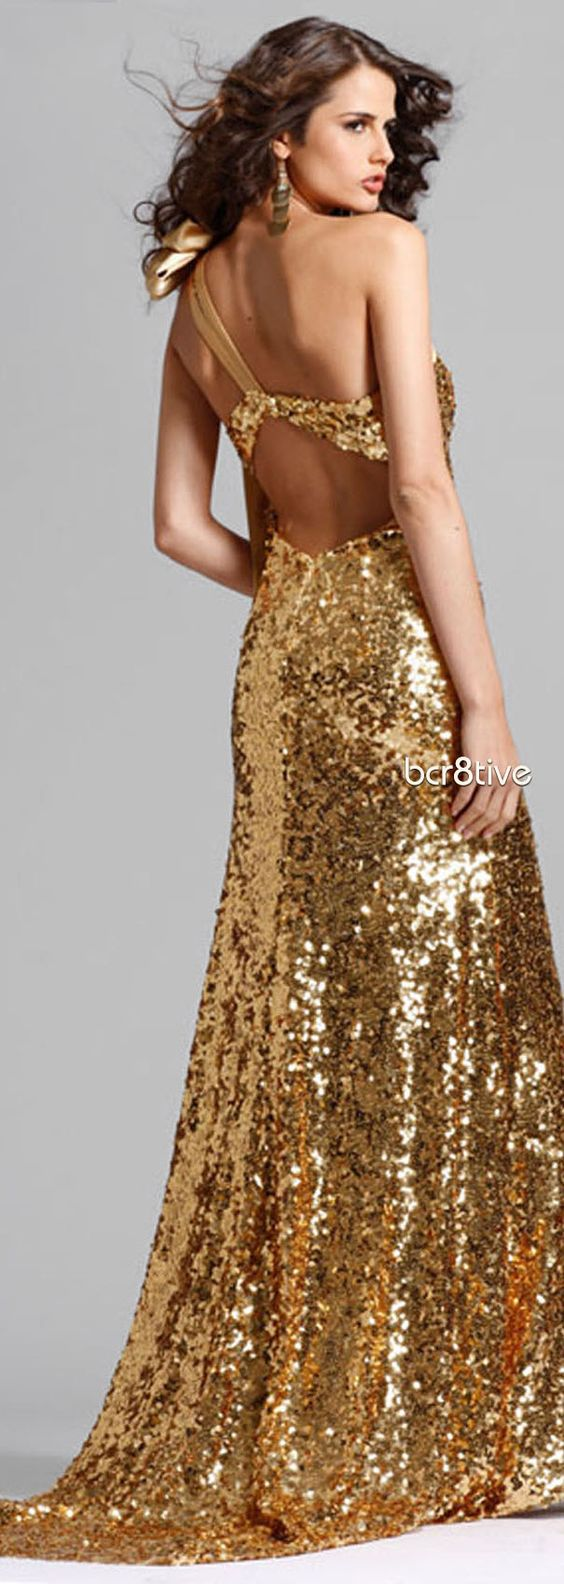 Gold Sequin Prom Dress  Gold  Pinterest  Cas Prom dresses and ...